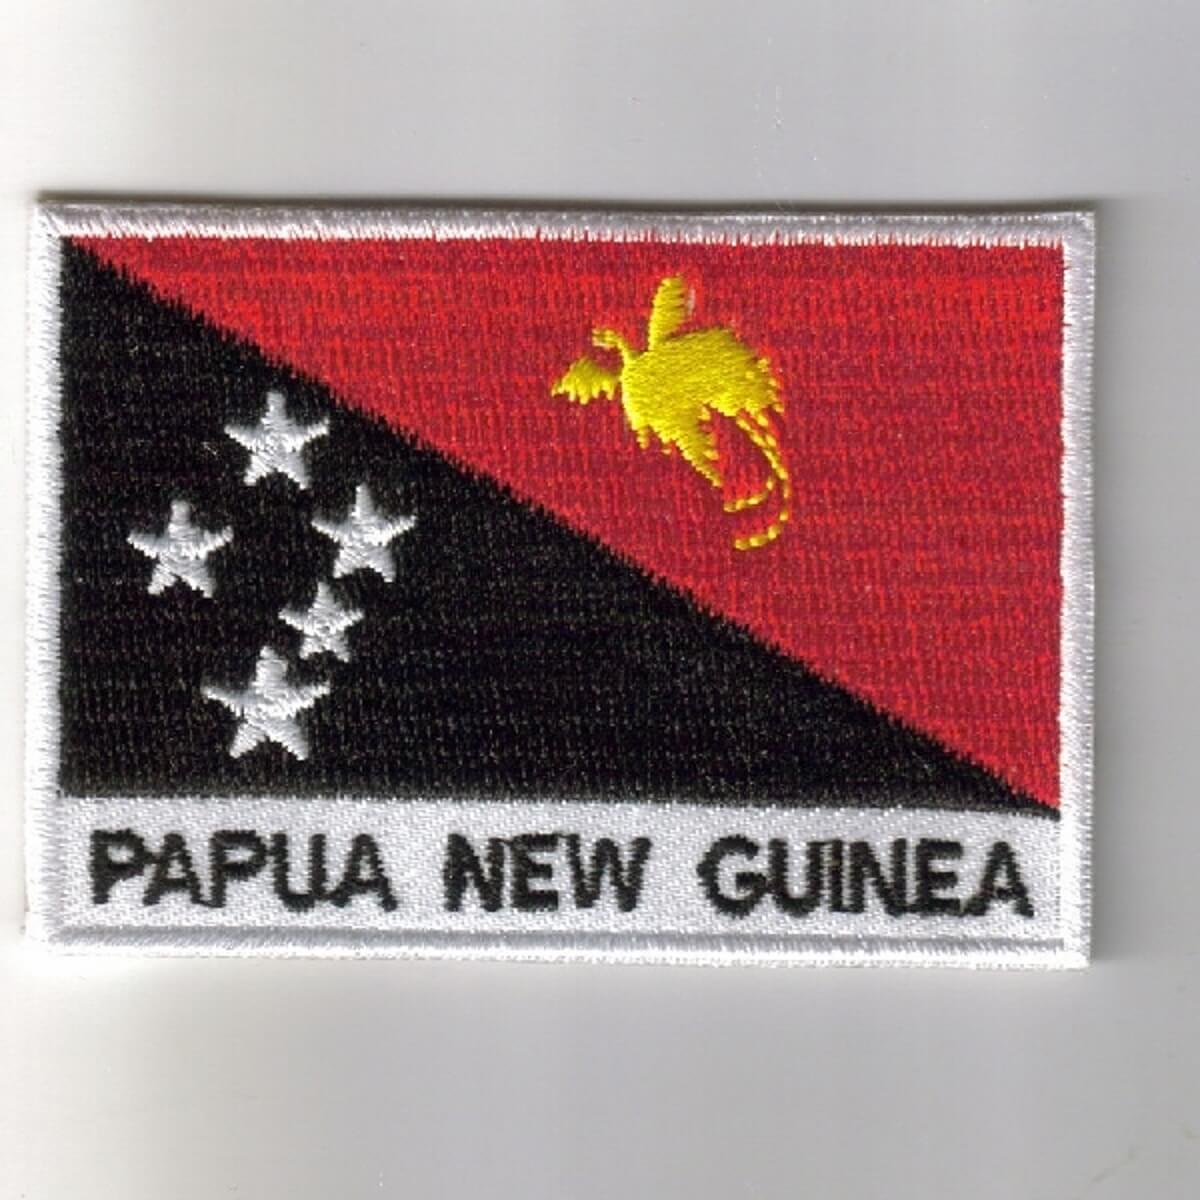 Guinea Embroidered Sew or Iron on Patch Badge